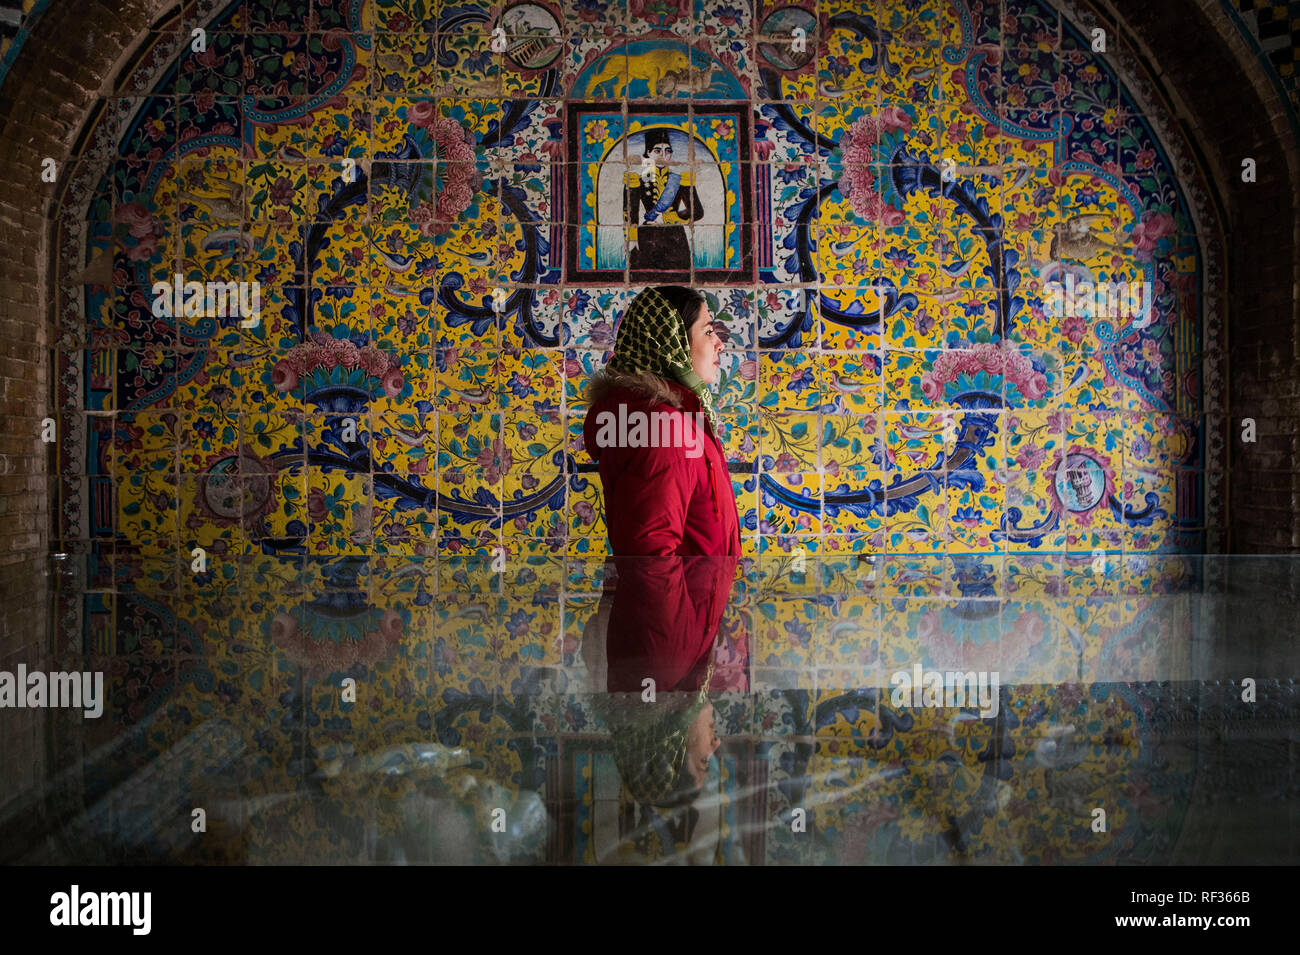 Beijing, Iran. 23rd Jan, 2019. A woman visits the Golestan Palace in Tehran, Iran, on Jan. 23, 2019. The Golestan Palace is one of the oldest complexes in Tehran built during the Safavid dynasty in the historic walled city. Credit: Ahmad Halabisaz/Xinhua/Alamy Live News - Stock Image